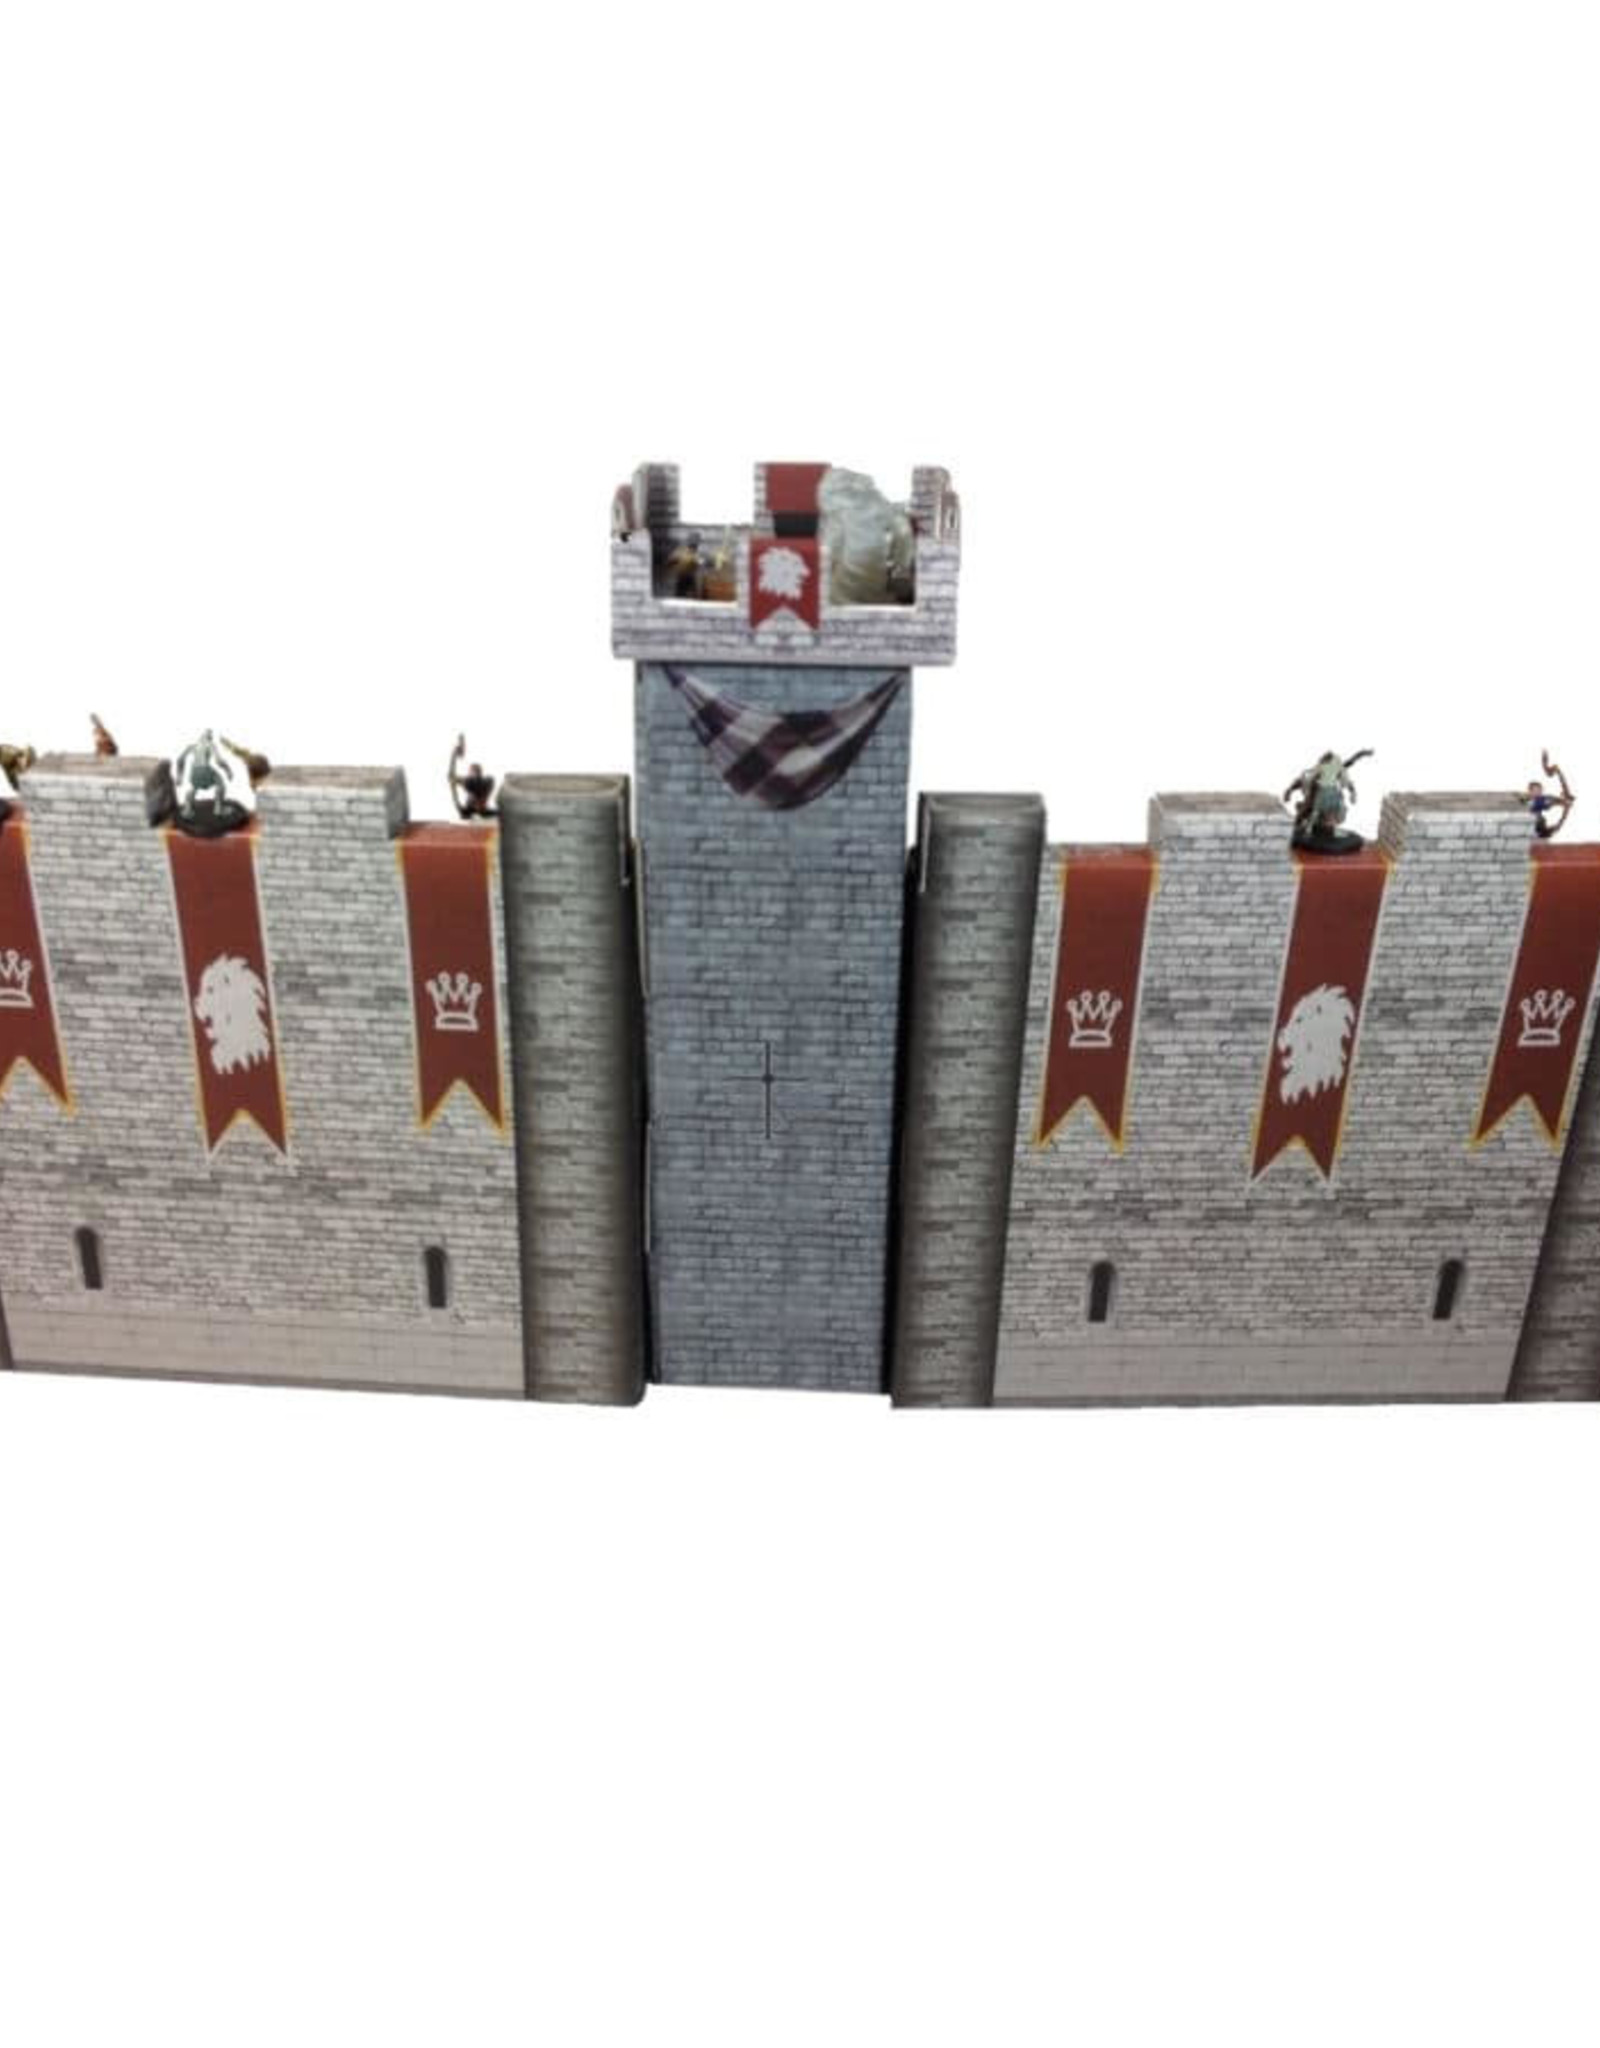 Role 4 Initiative Castle Keep Dice Tower Combo (Turn Tracker/DM Screen/Dice Tower)